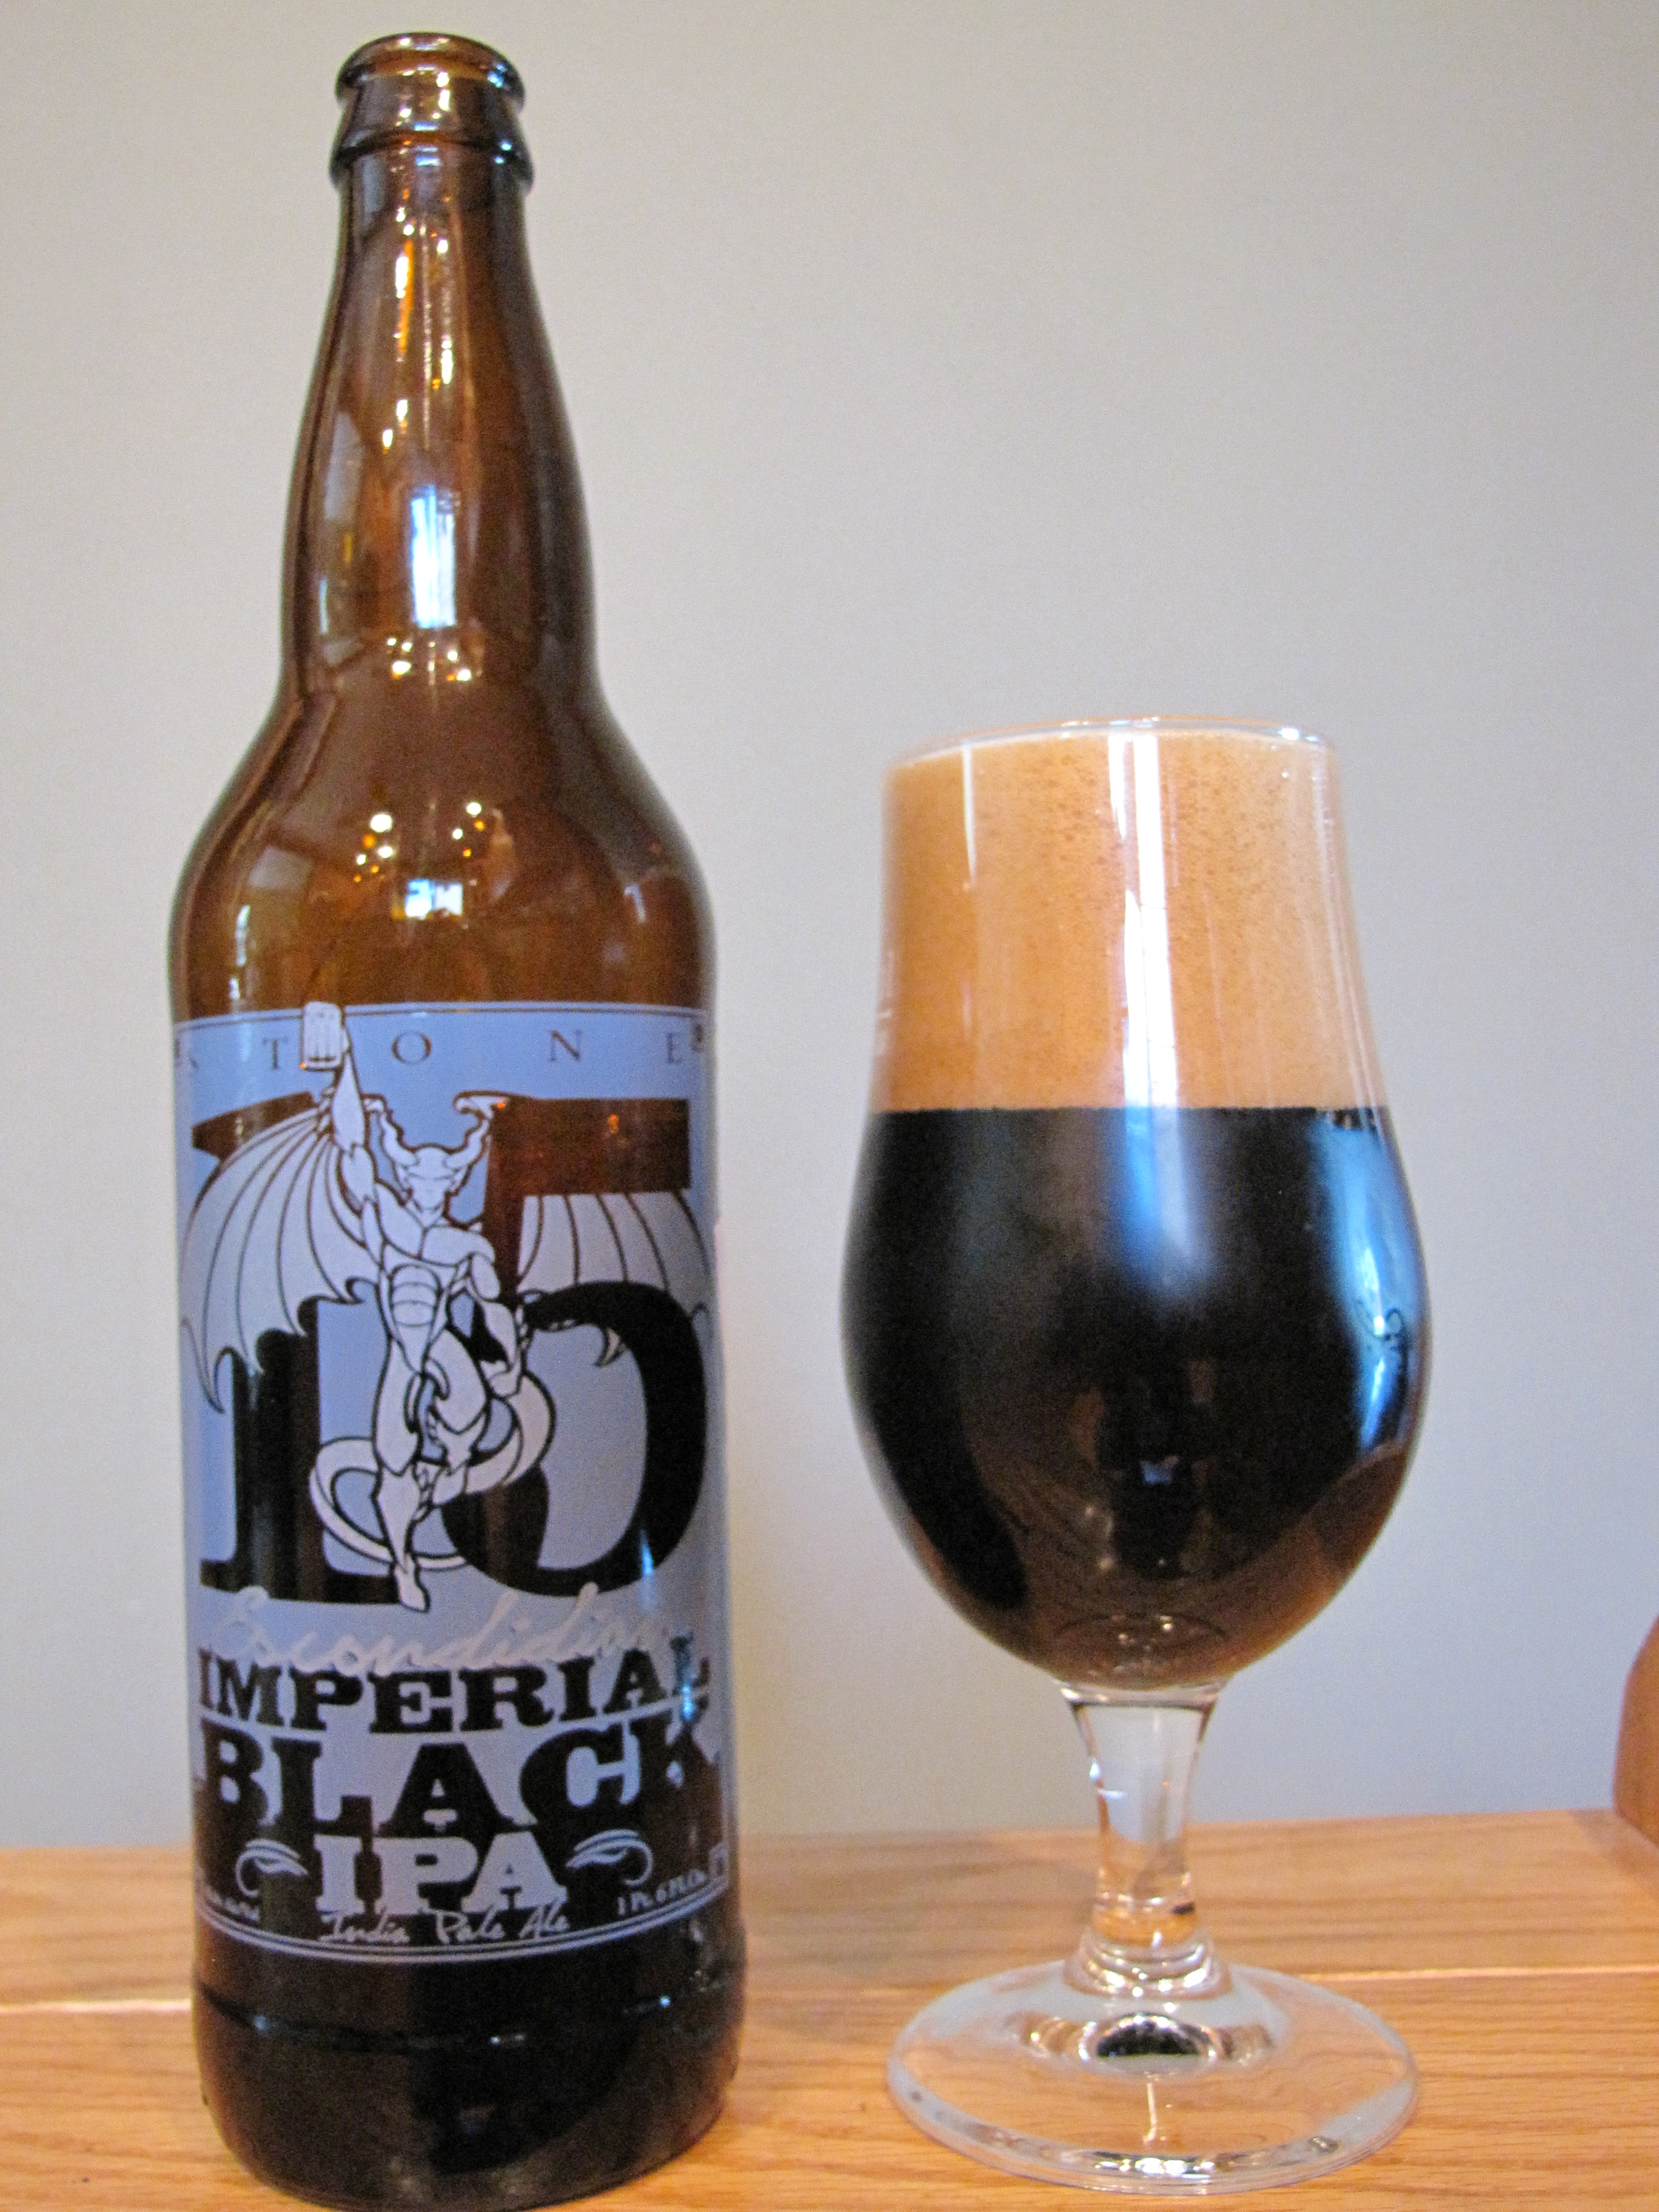 Stone 15th Anniversary Escondidian Imperial Black IPA